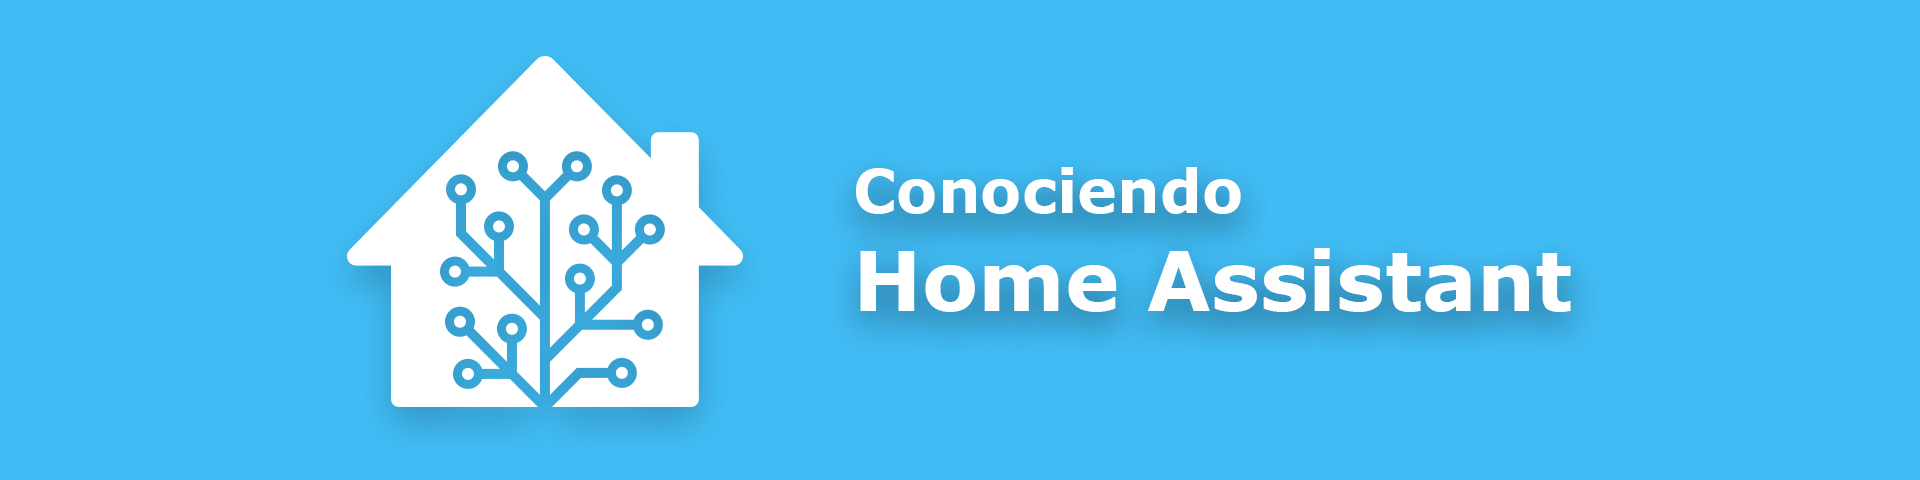 Conociendo Home Assistant